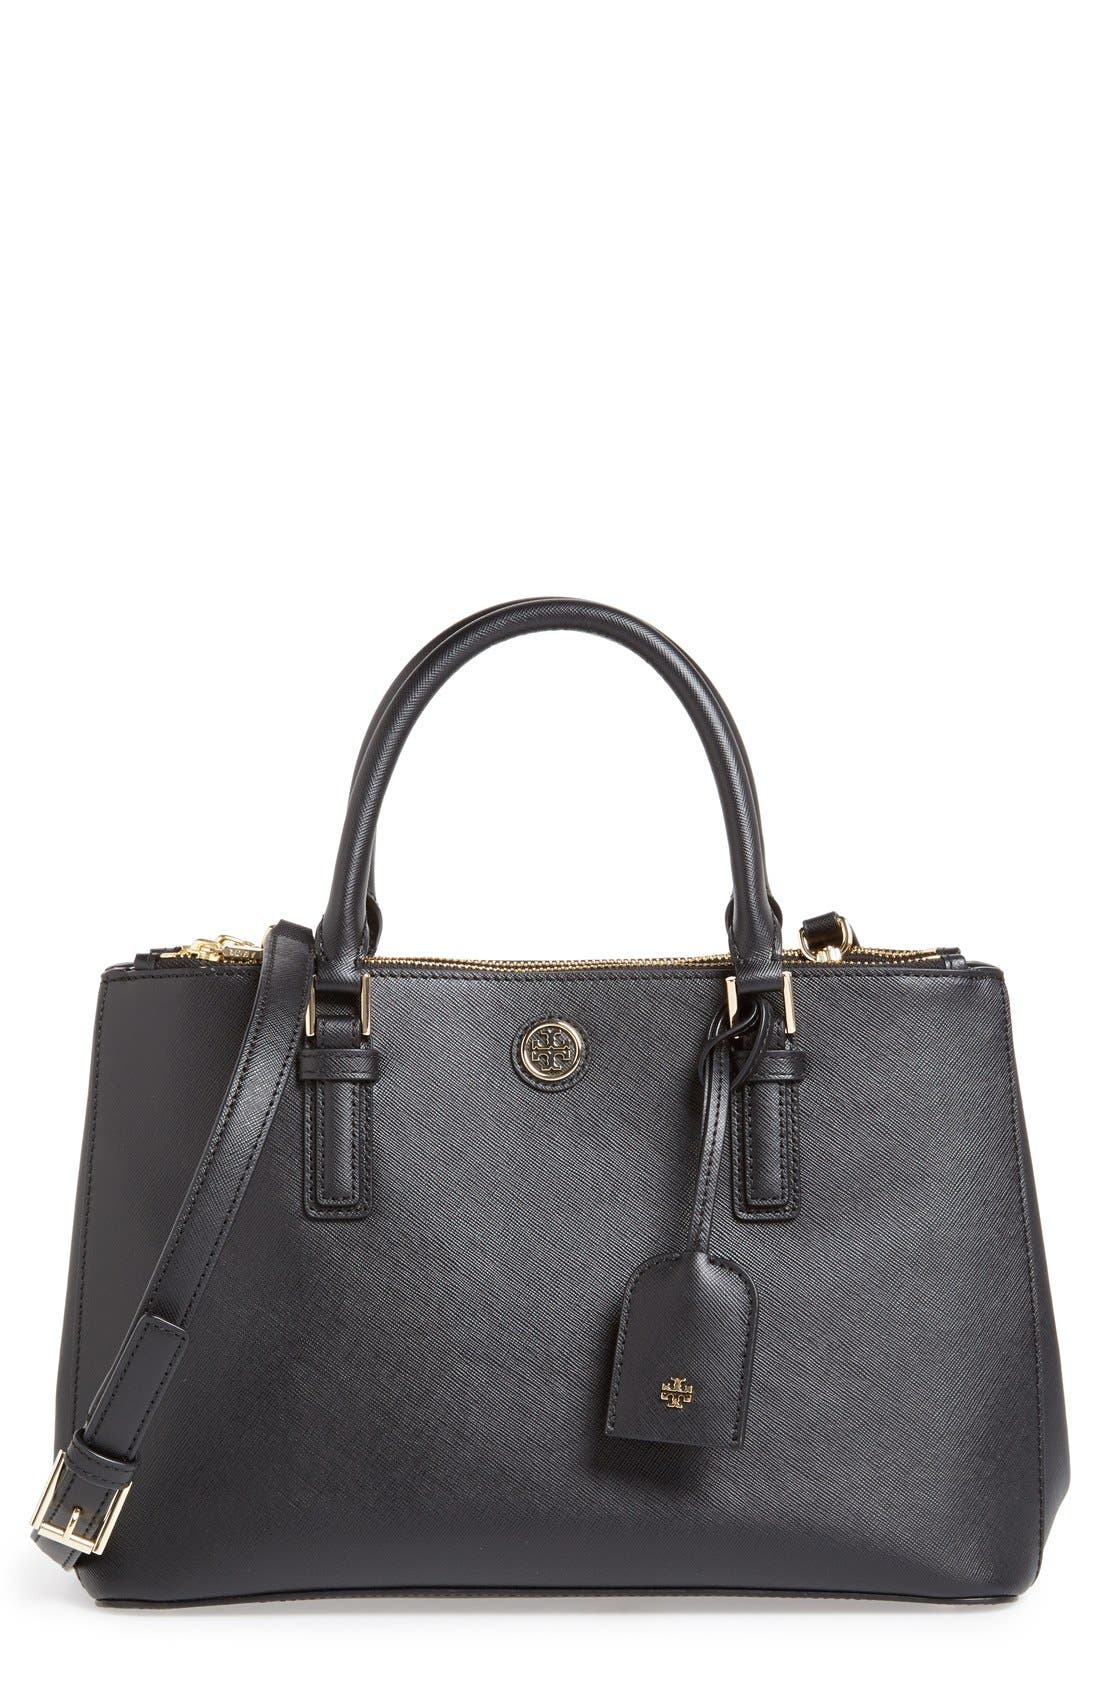 Alternate Image 1 Selected - Tory Burch 'Mini Robinson' Double Zip Tote